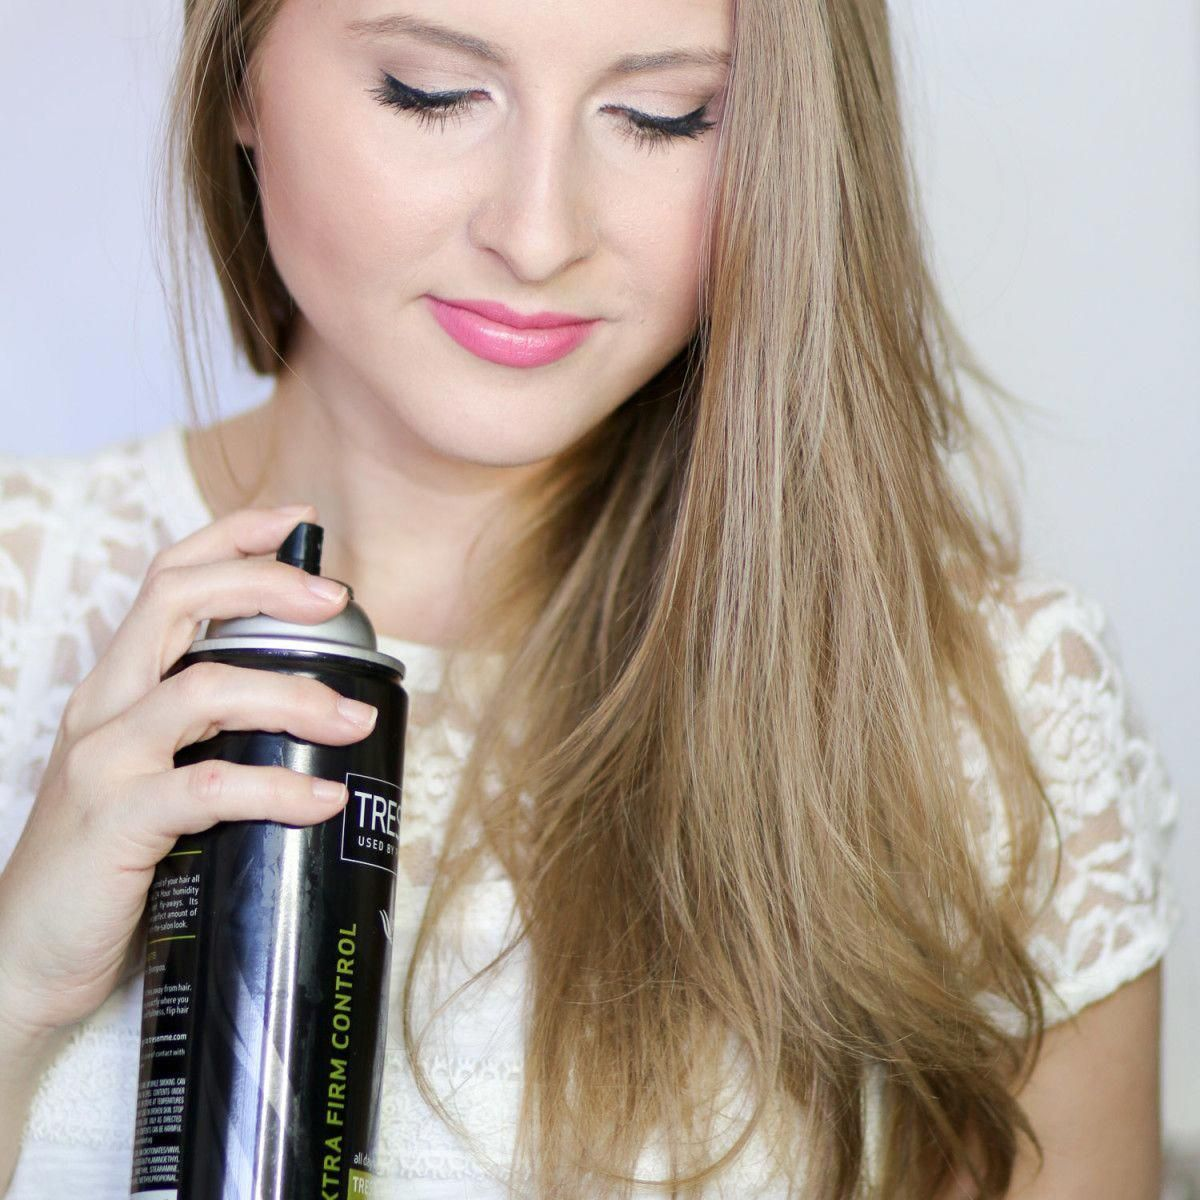 Learn how to fake a salon blowout at home with this easy